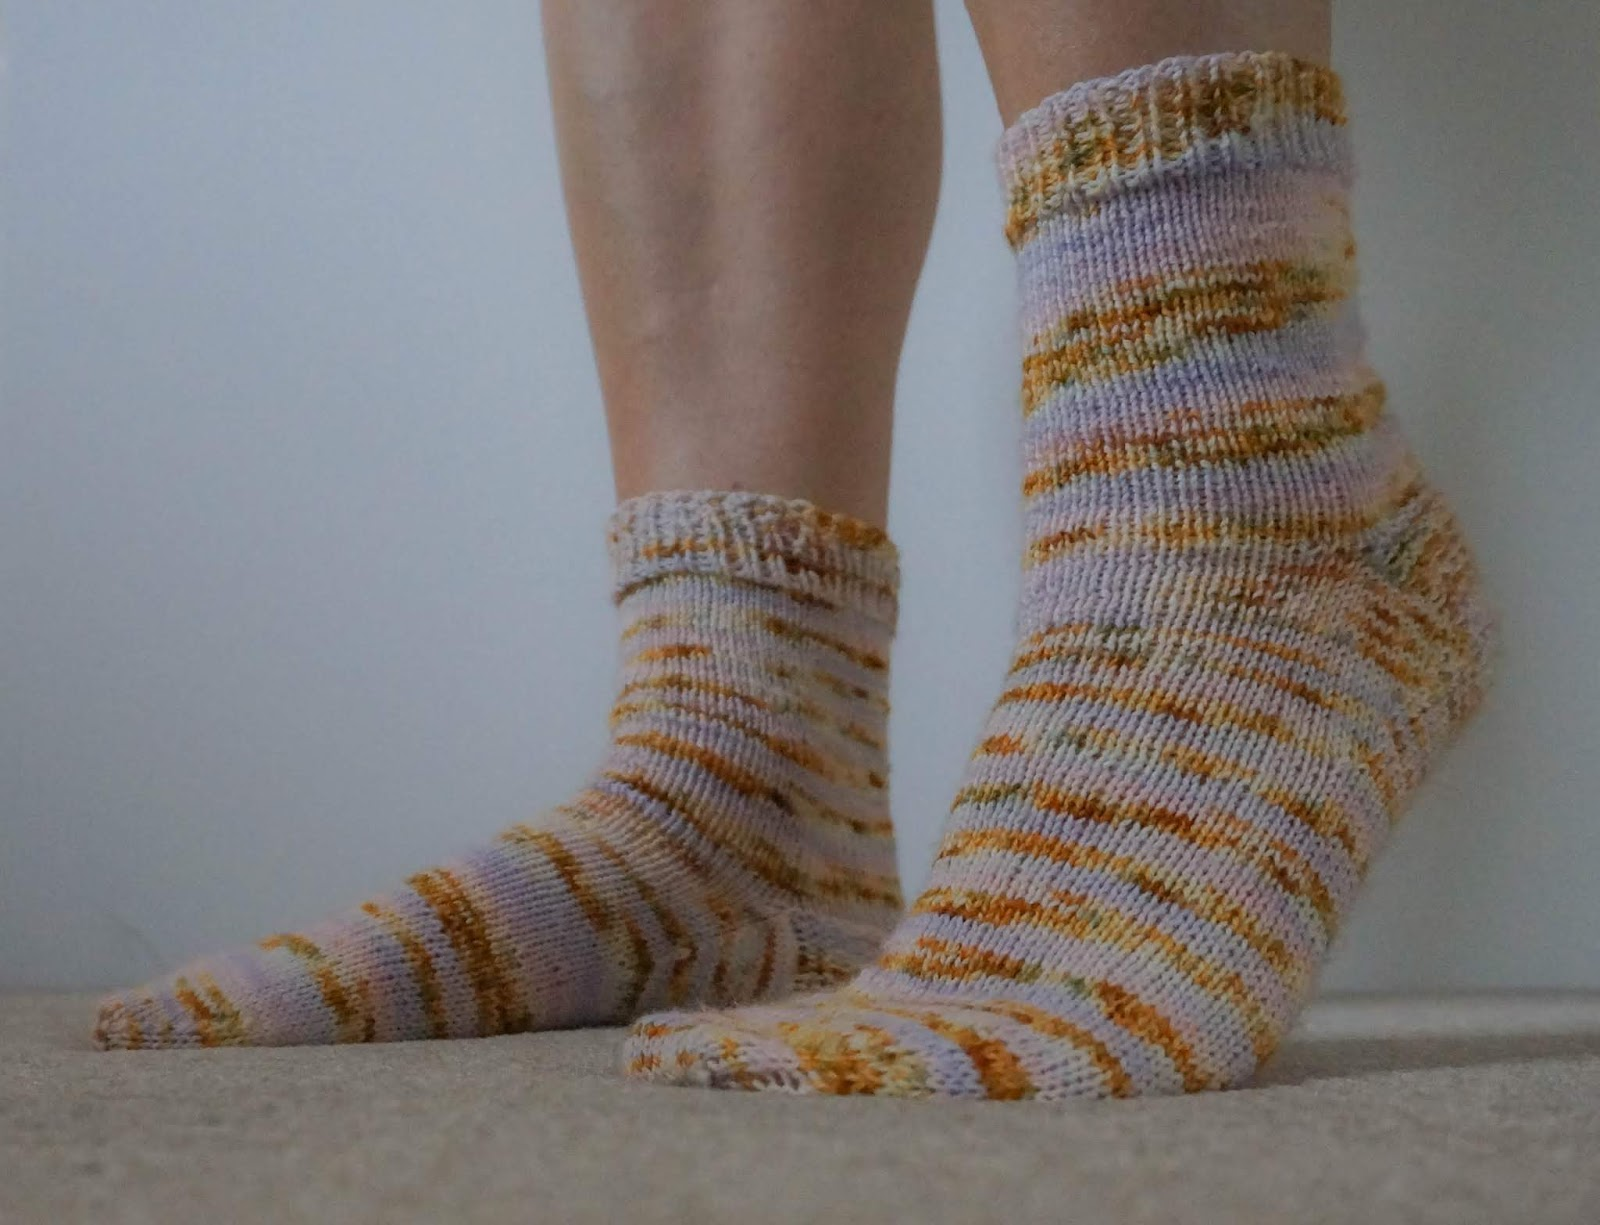 Cuff down socks for a beginner knitter